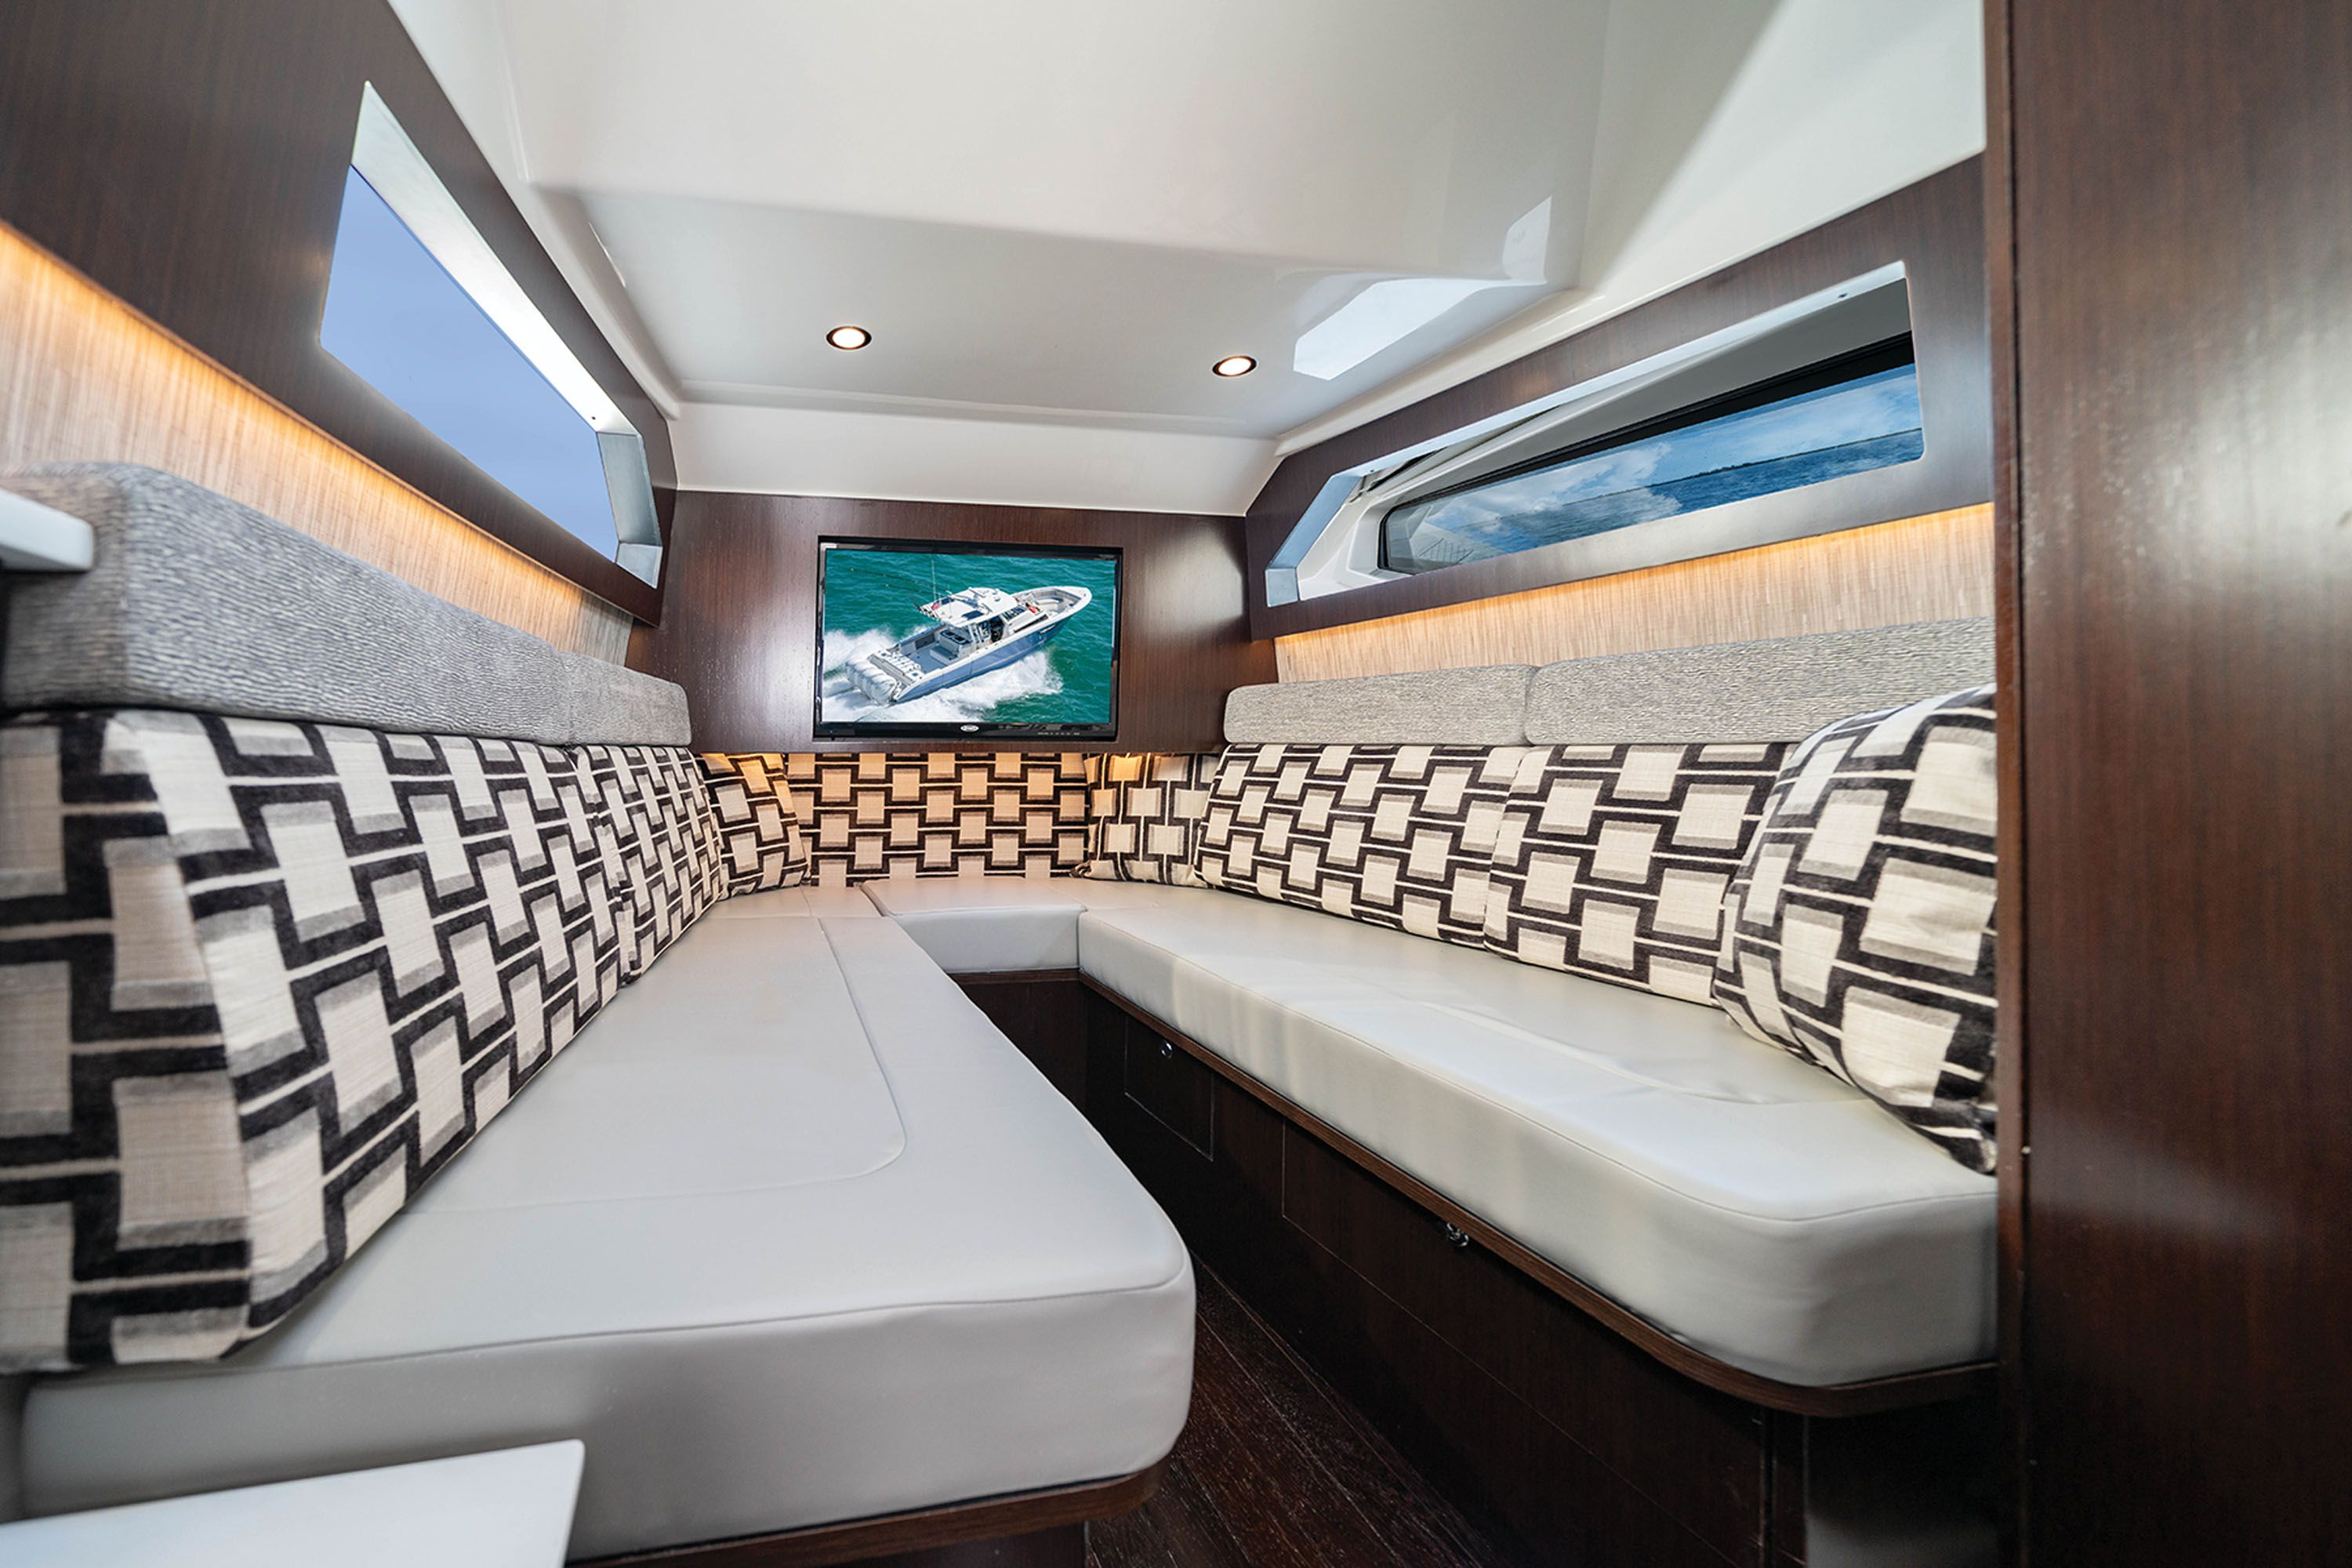 The luxurious cabin has everything needed for overnighting.